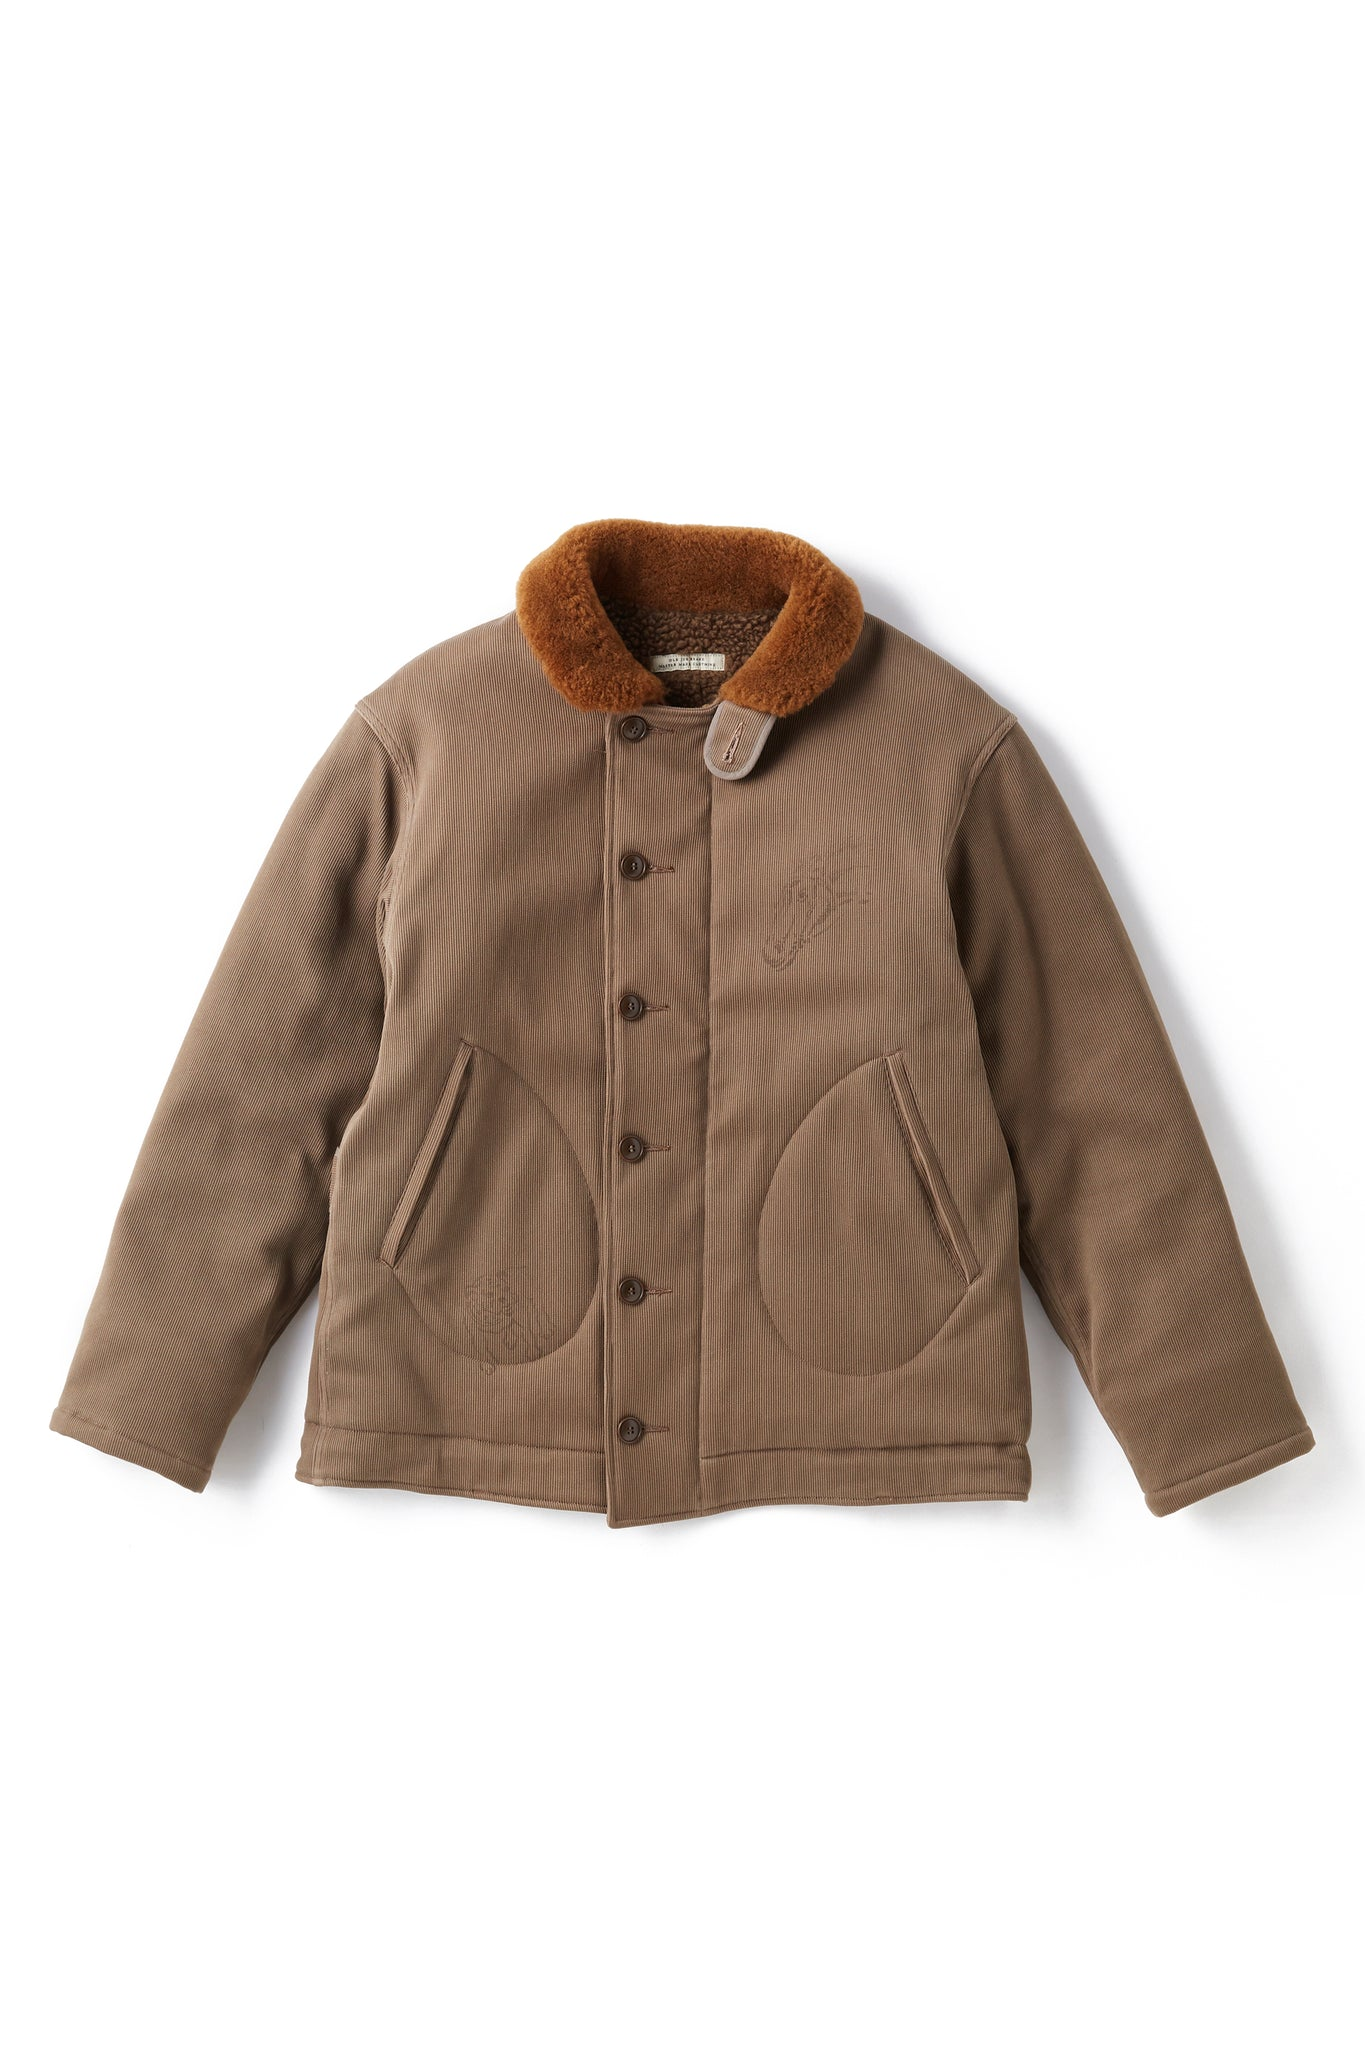 CIVILIAN SHEARING WINTER JACKET - 202OJ-JK13